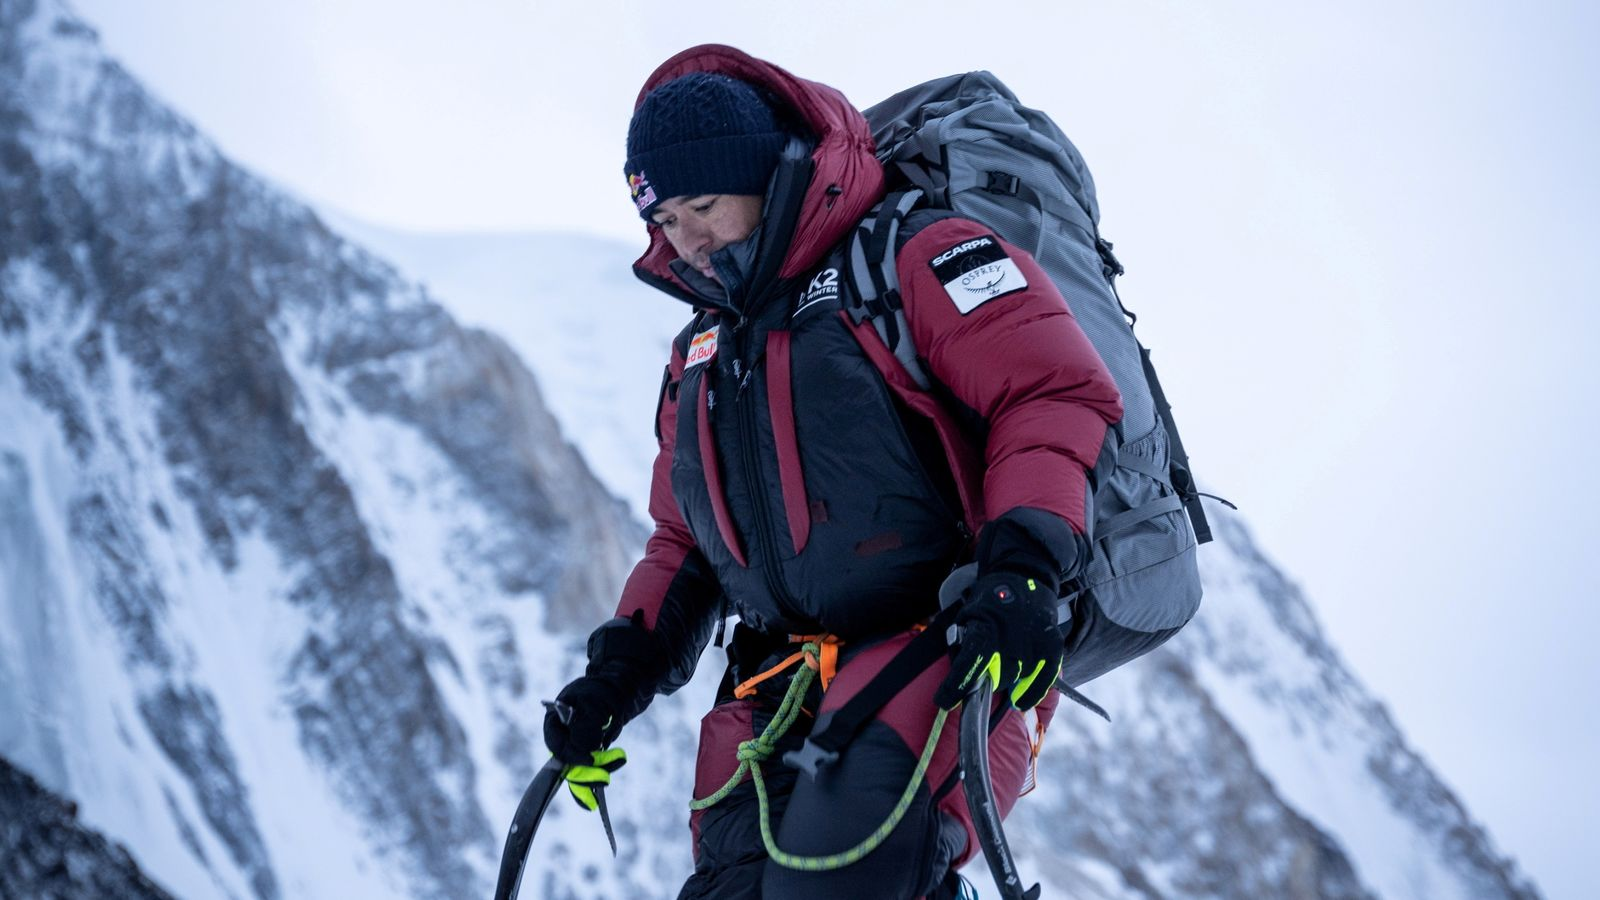 'Very special moment' as Nepali sherpas are the first to reach top of K2 in winter